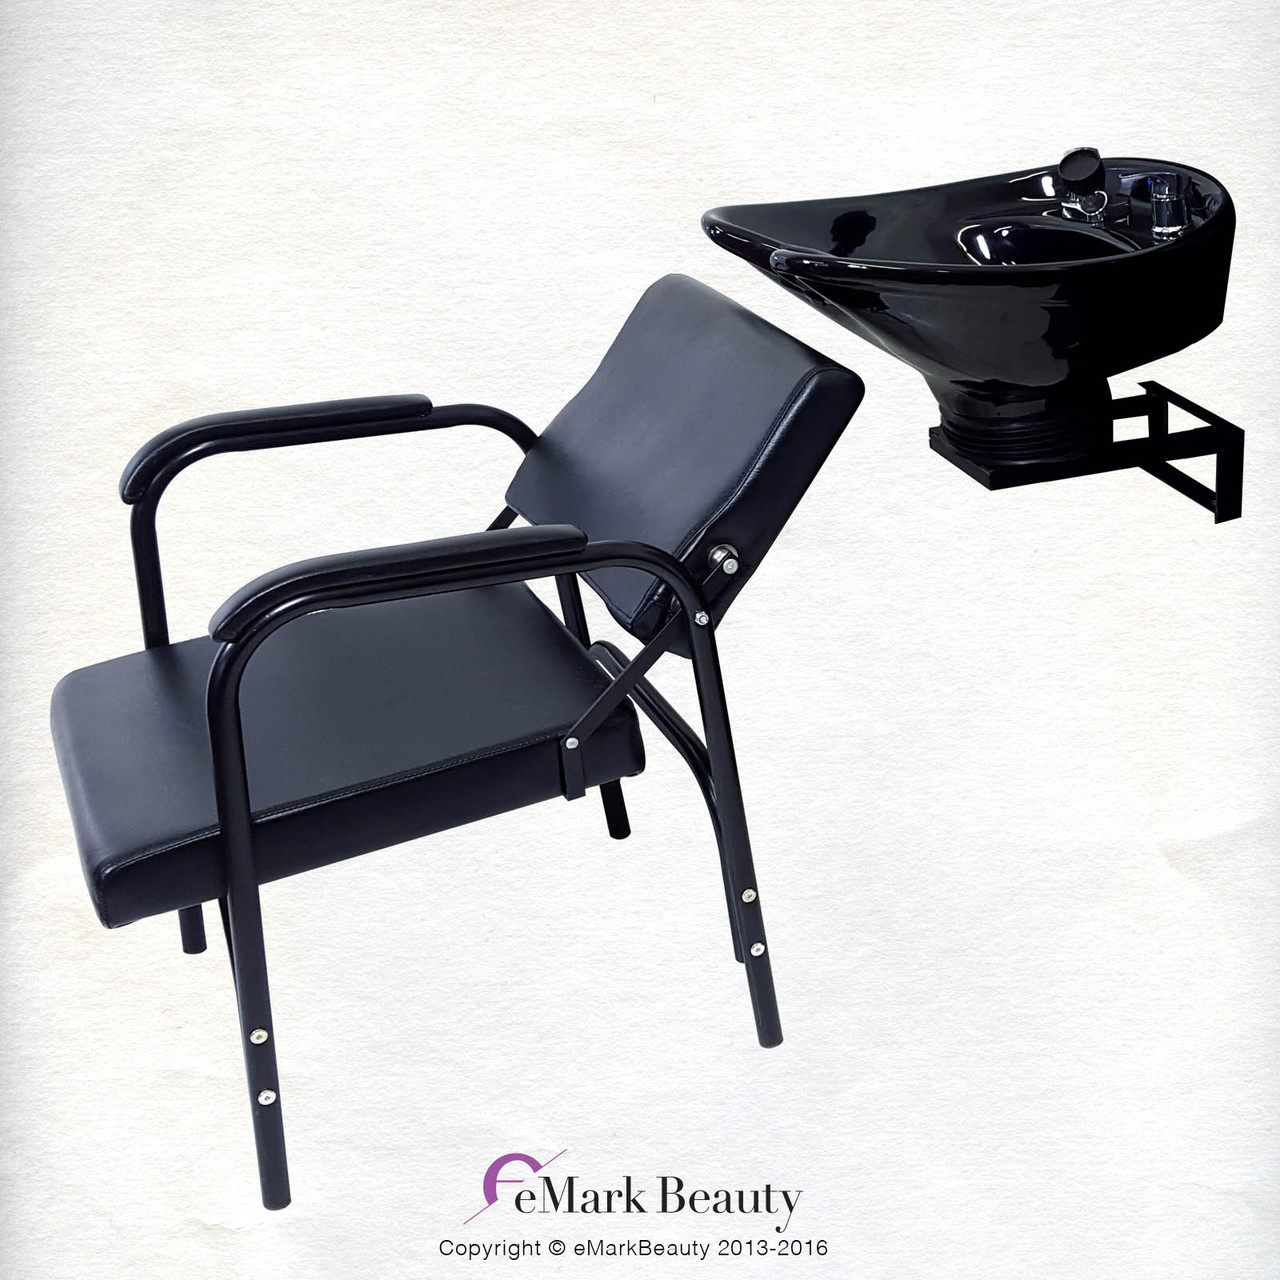 SALE: Ceramic Tilting Shampoo Bowl with Wall Mount attachment and Reclining Shampoo Chair - TLC-B07WT-216